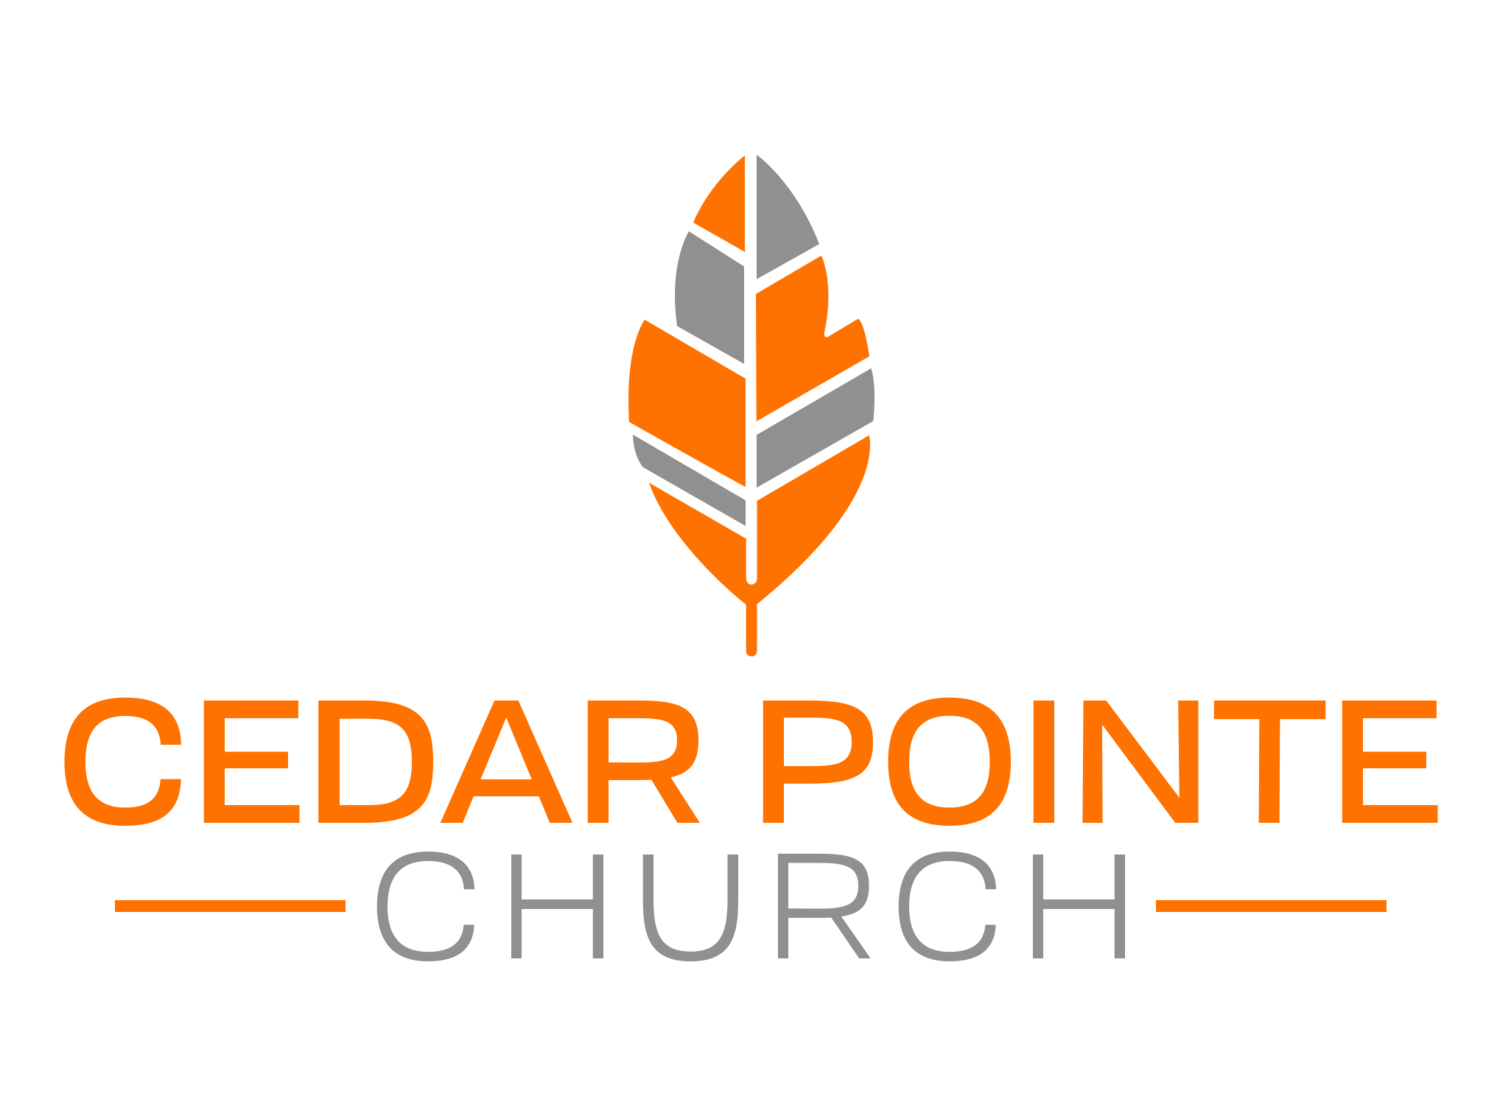 Cedar Pointe Church